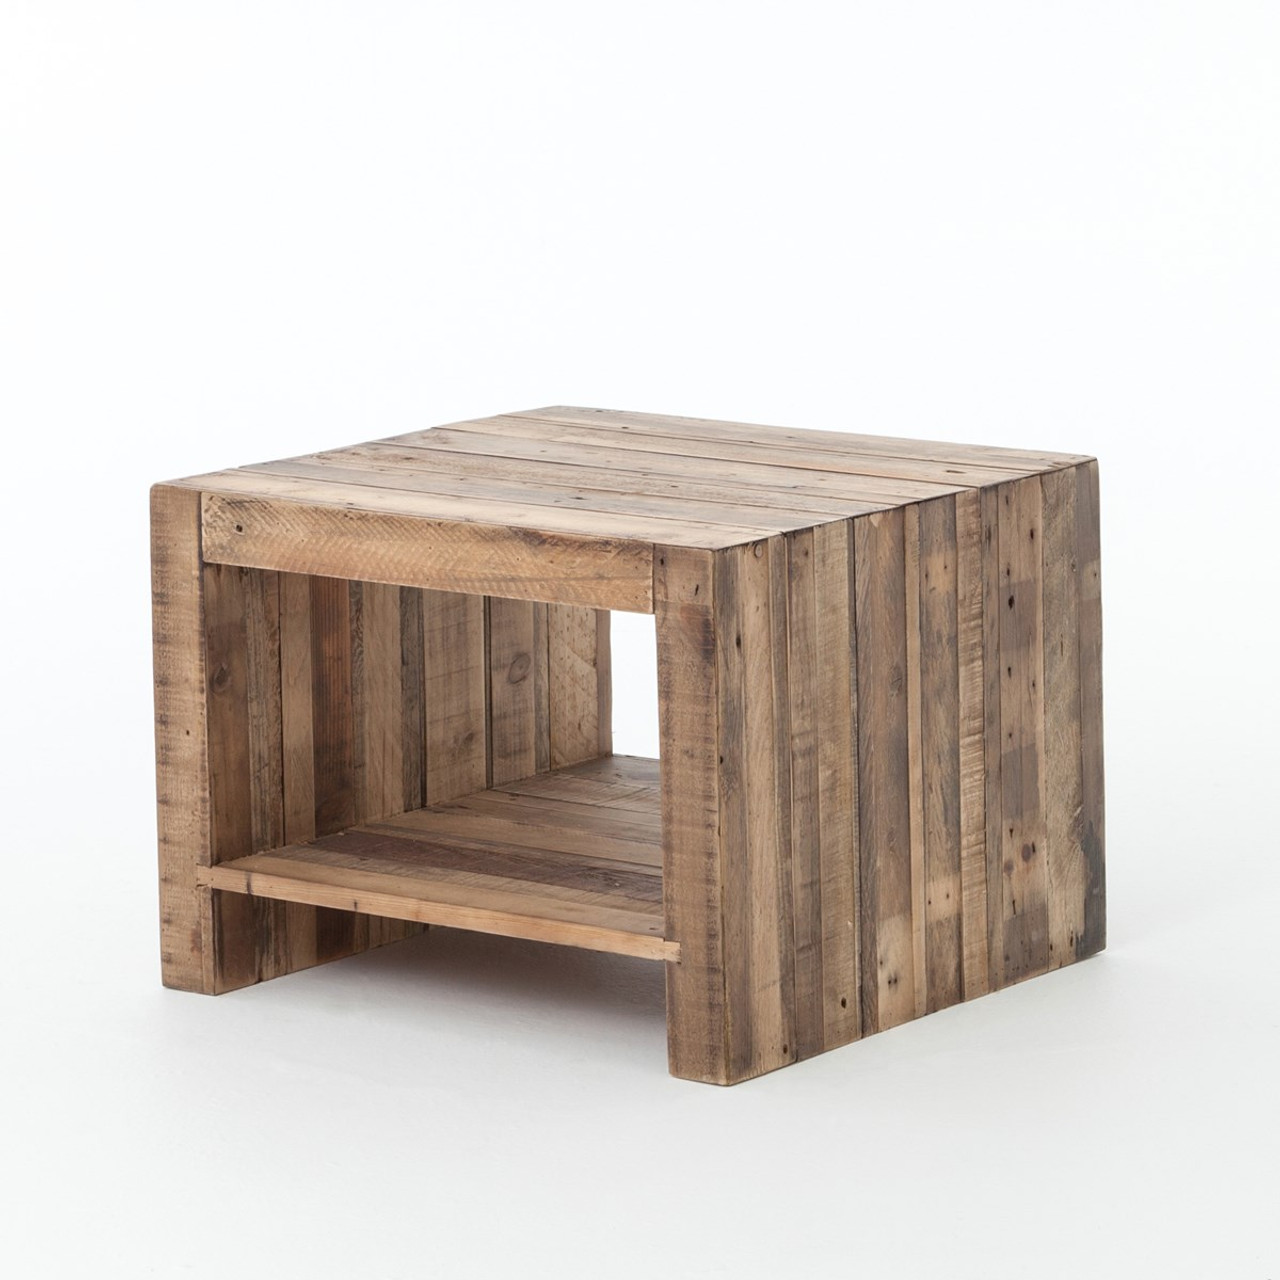 Incroyable Angora Reclaimed Wood Square End Table